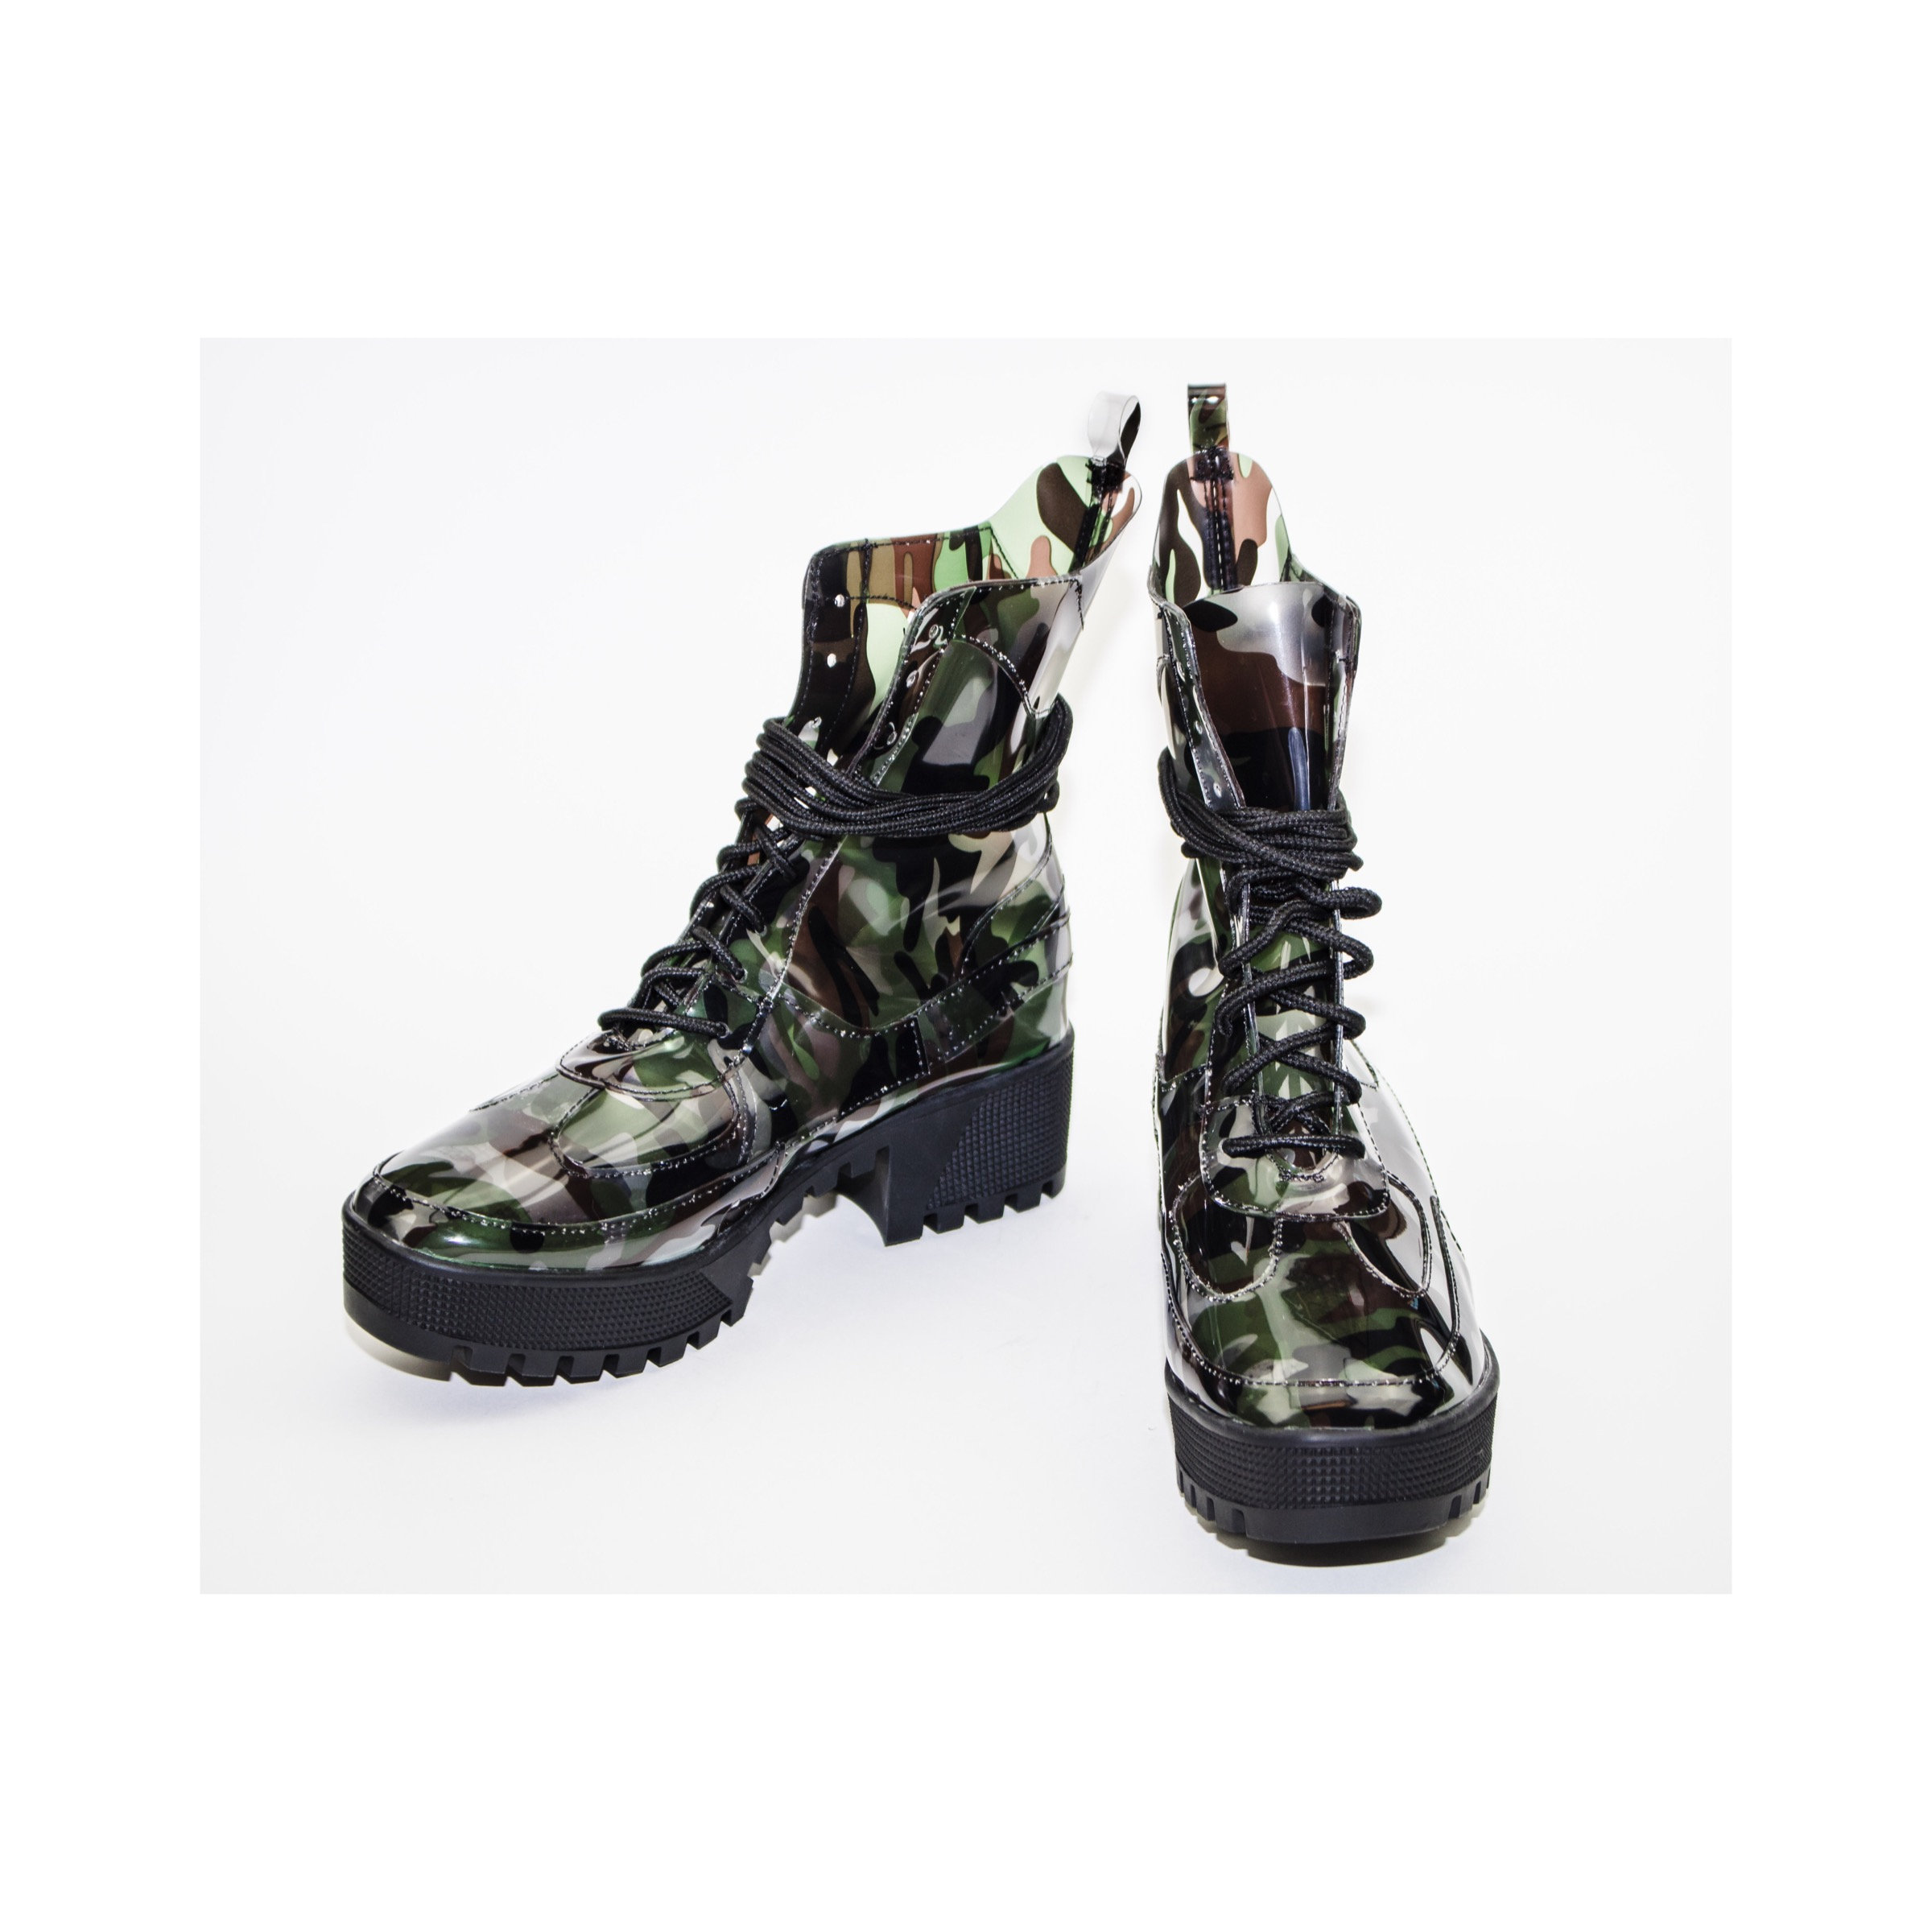 496673aa6 DASHING Lug Sole Combat Boots in Camo | Cape Robbin Official